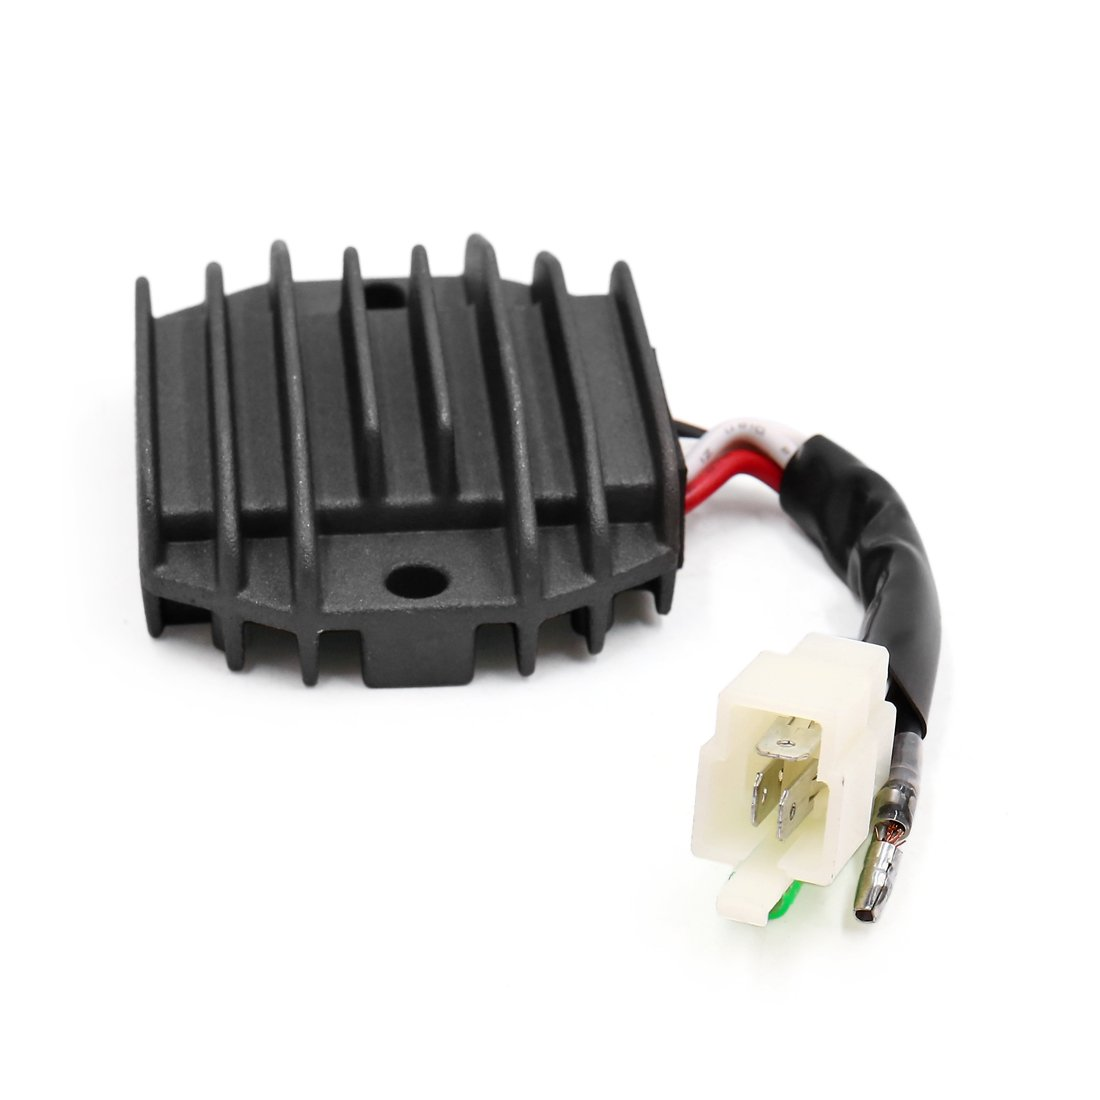 uxcell Motorcycle Voltage Regulator Rectifier for Yamaha YFB 250 YFM 350 400 600